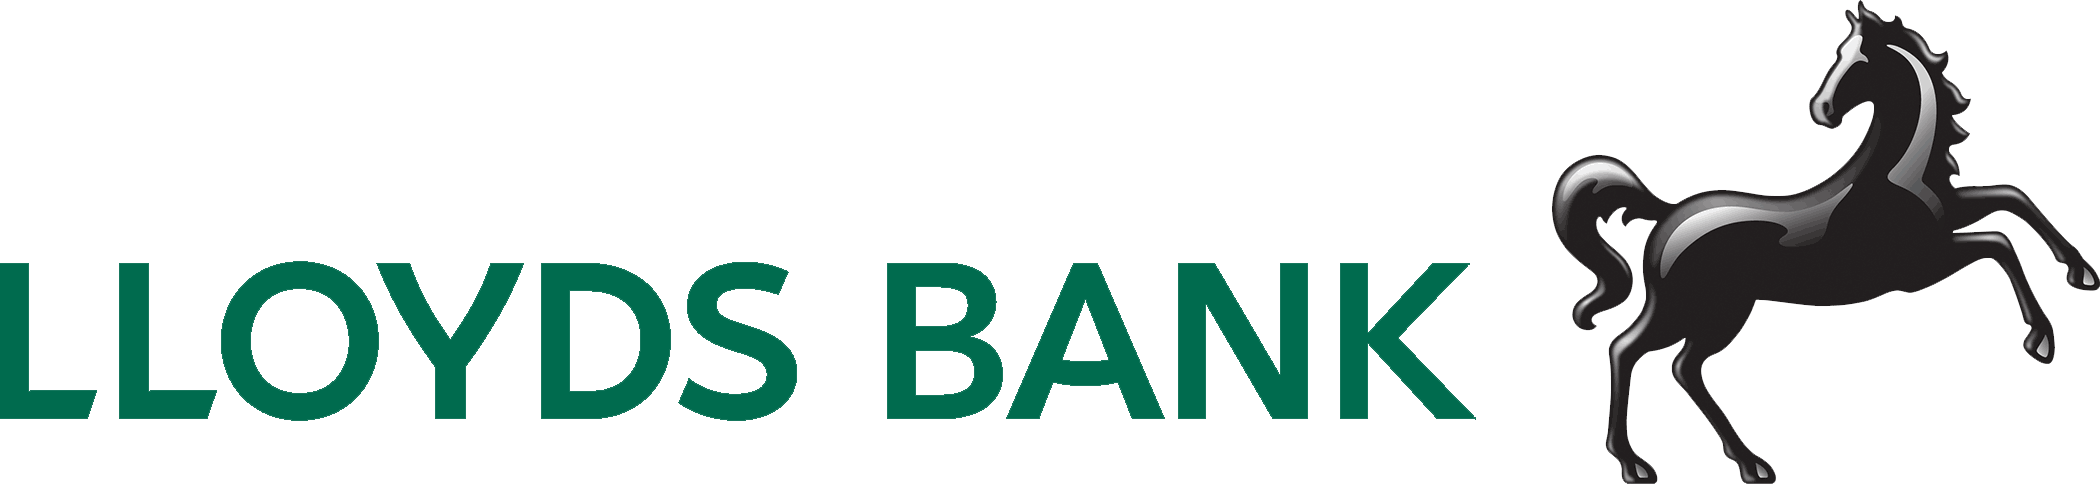 lloydsbank_logo